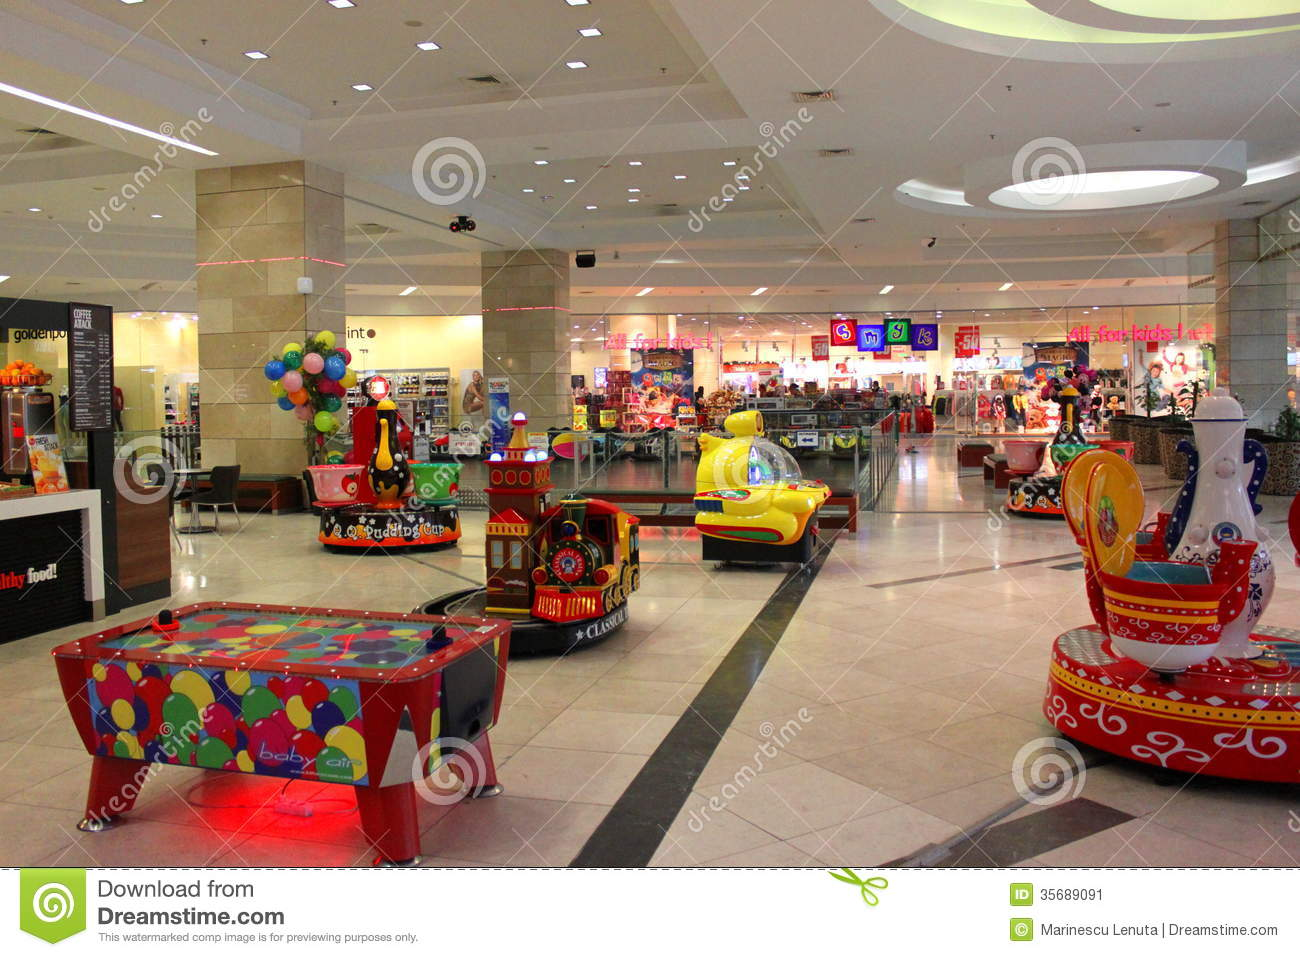 stoned in the mall the kids play